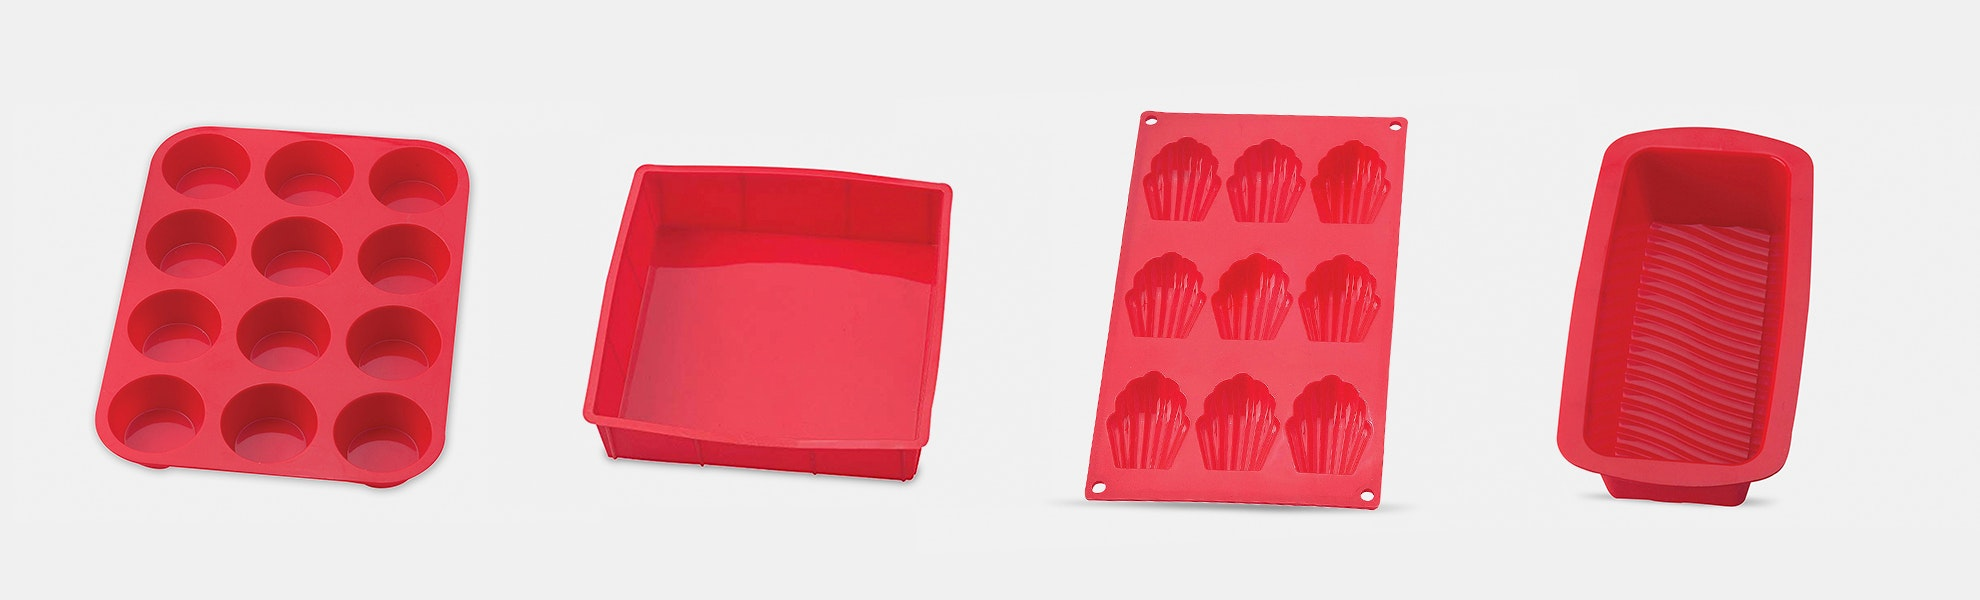 Mrs. Anderson's Silicone Bakeware